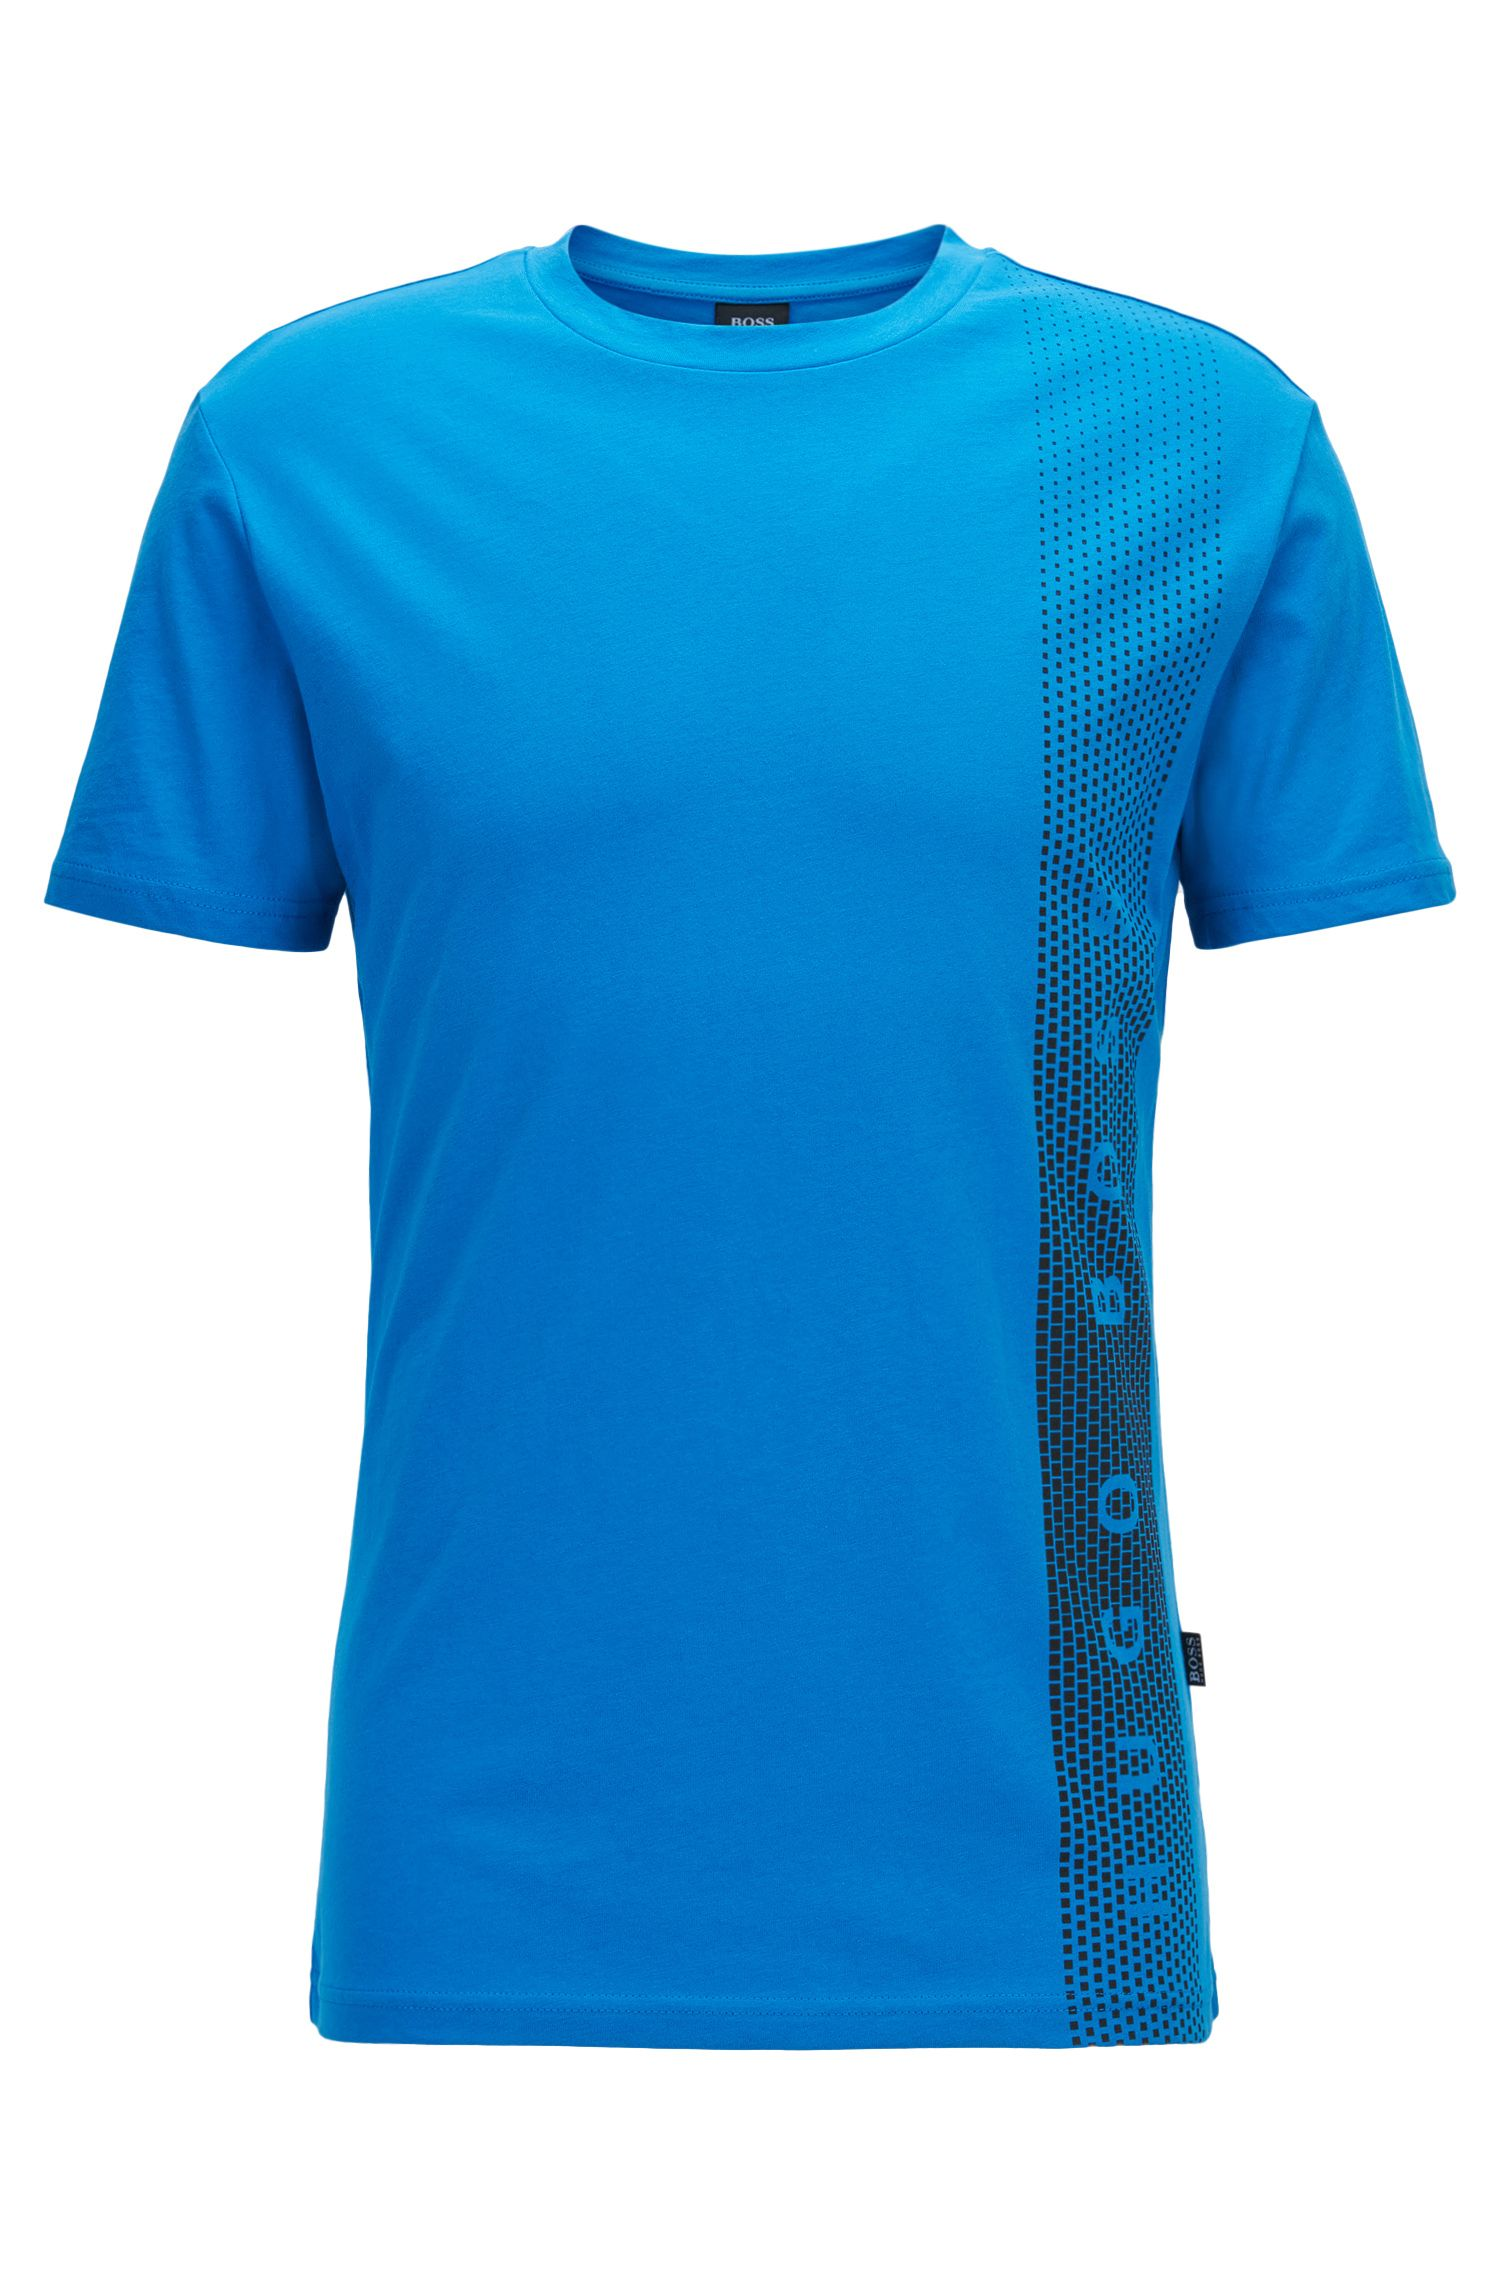 T-shirt Slim Fit en coton avec protection anti-UV